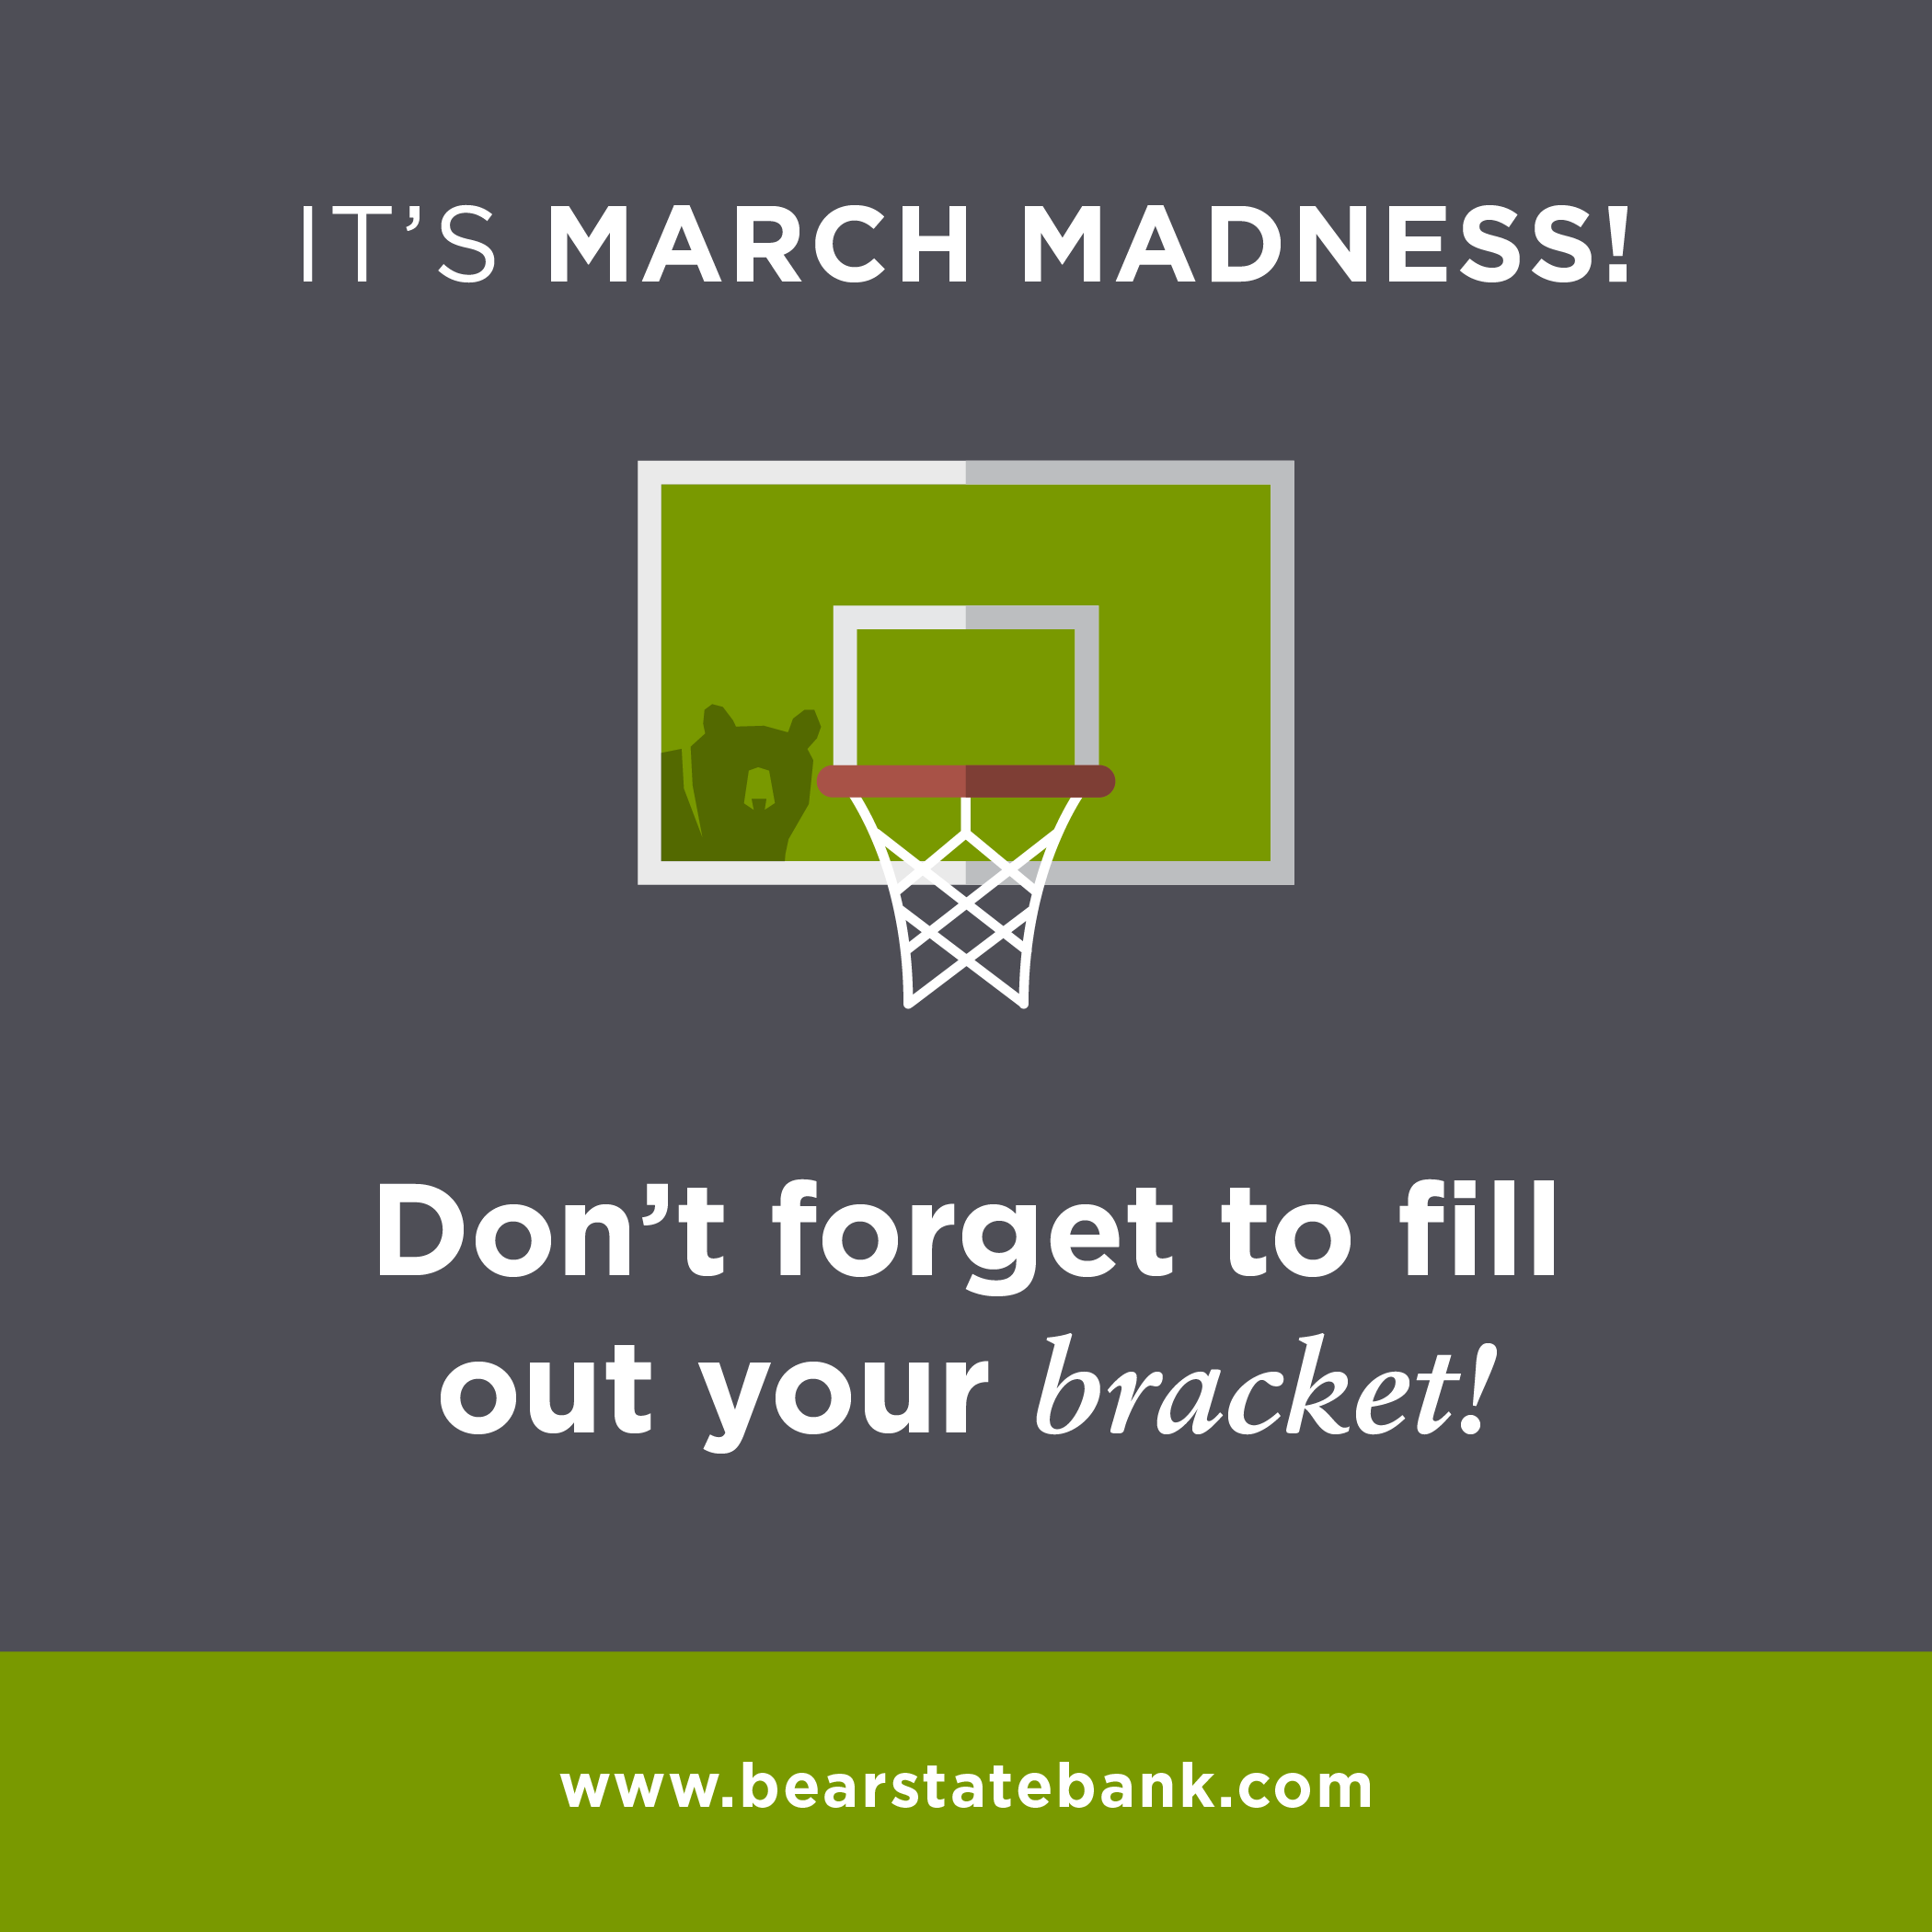 It's March Madness! Don't forget to fill out your bracket